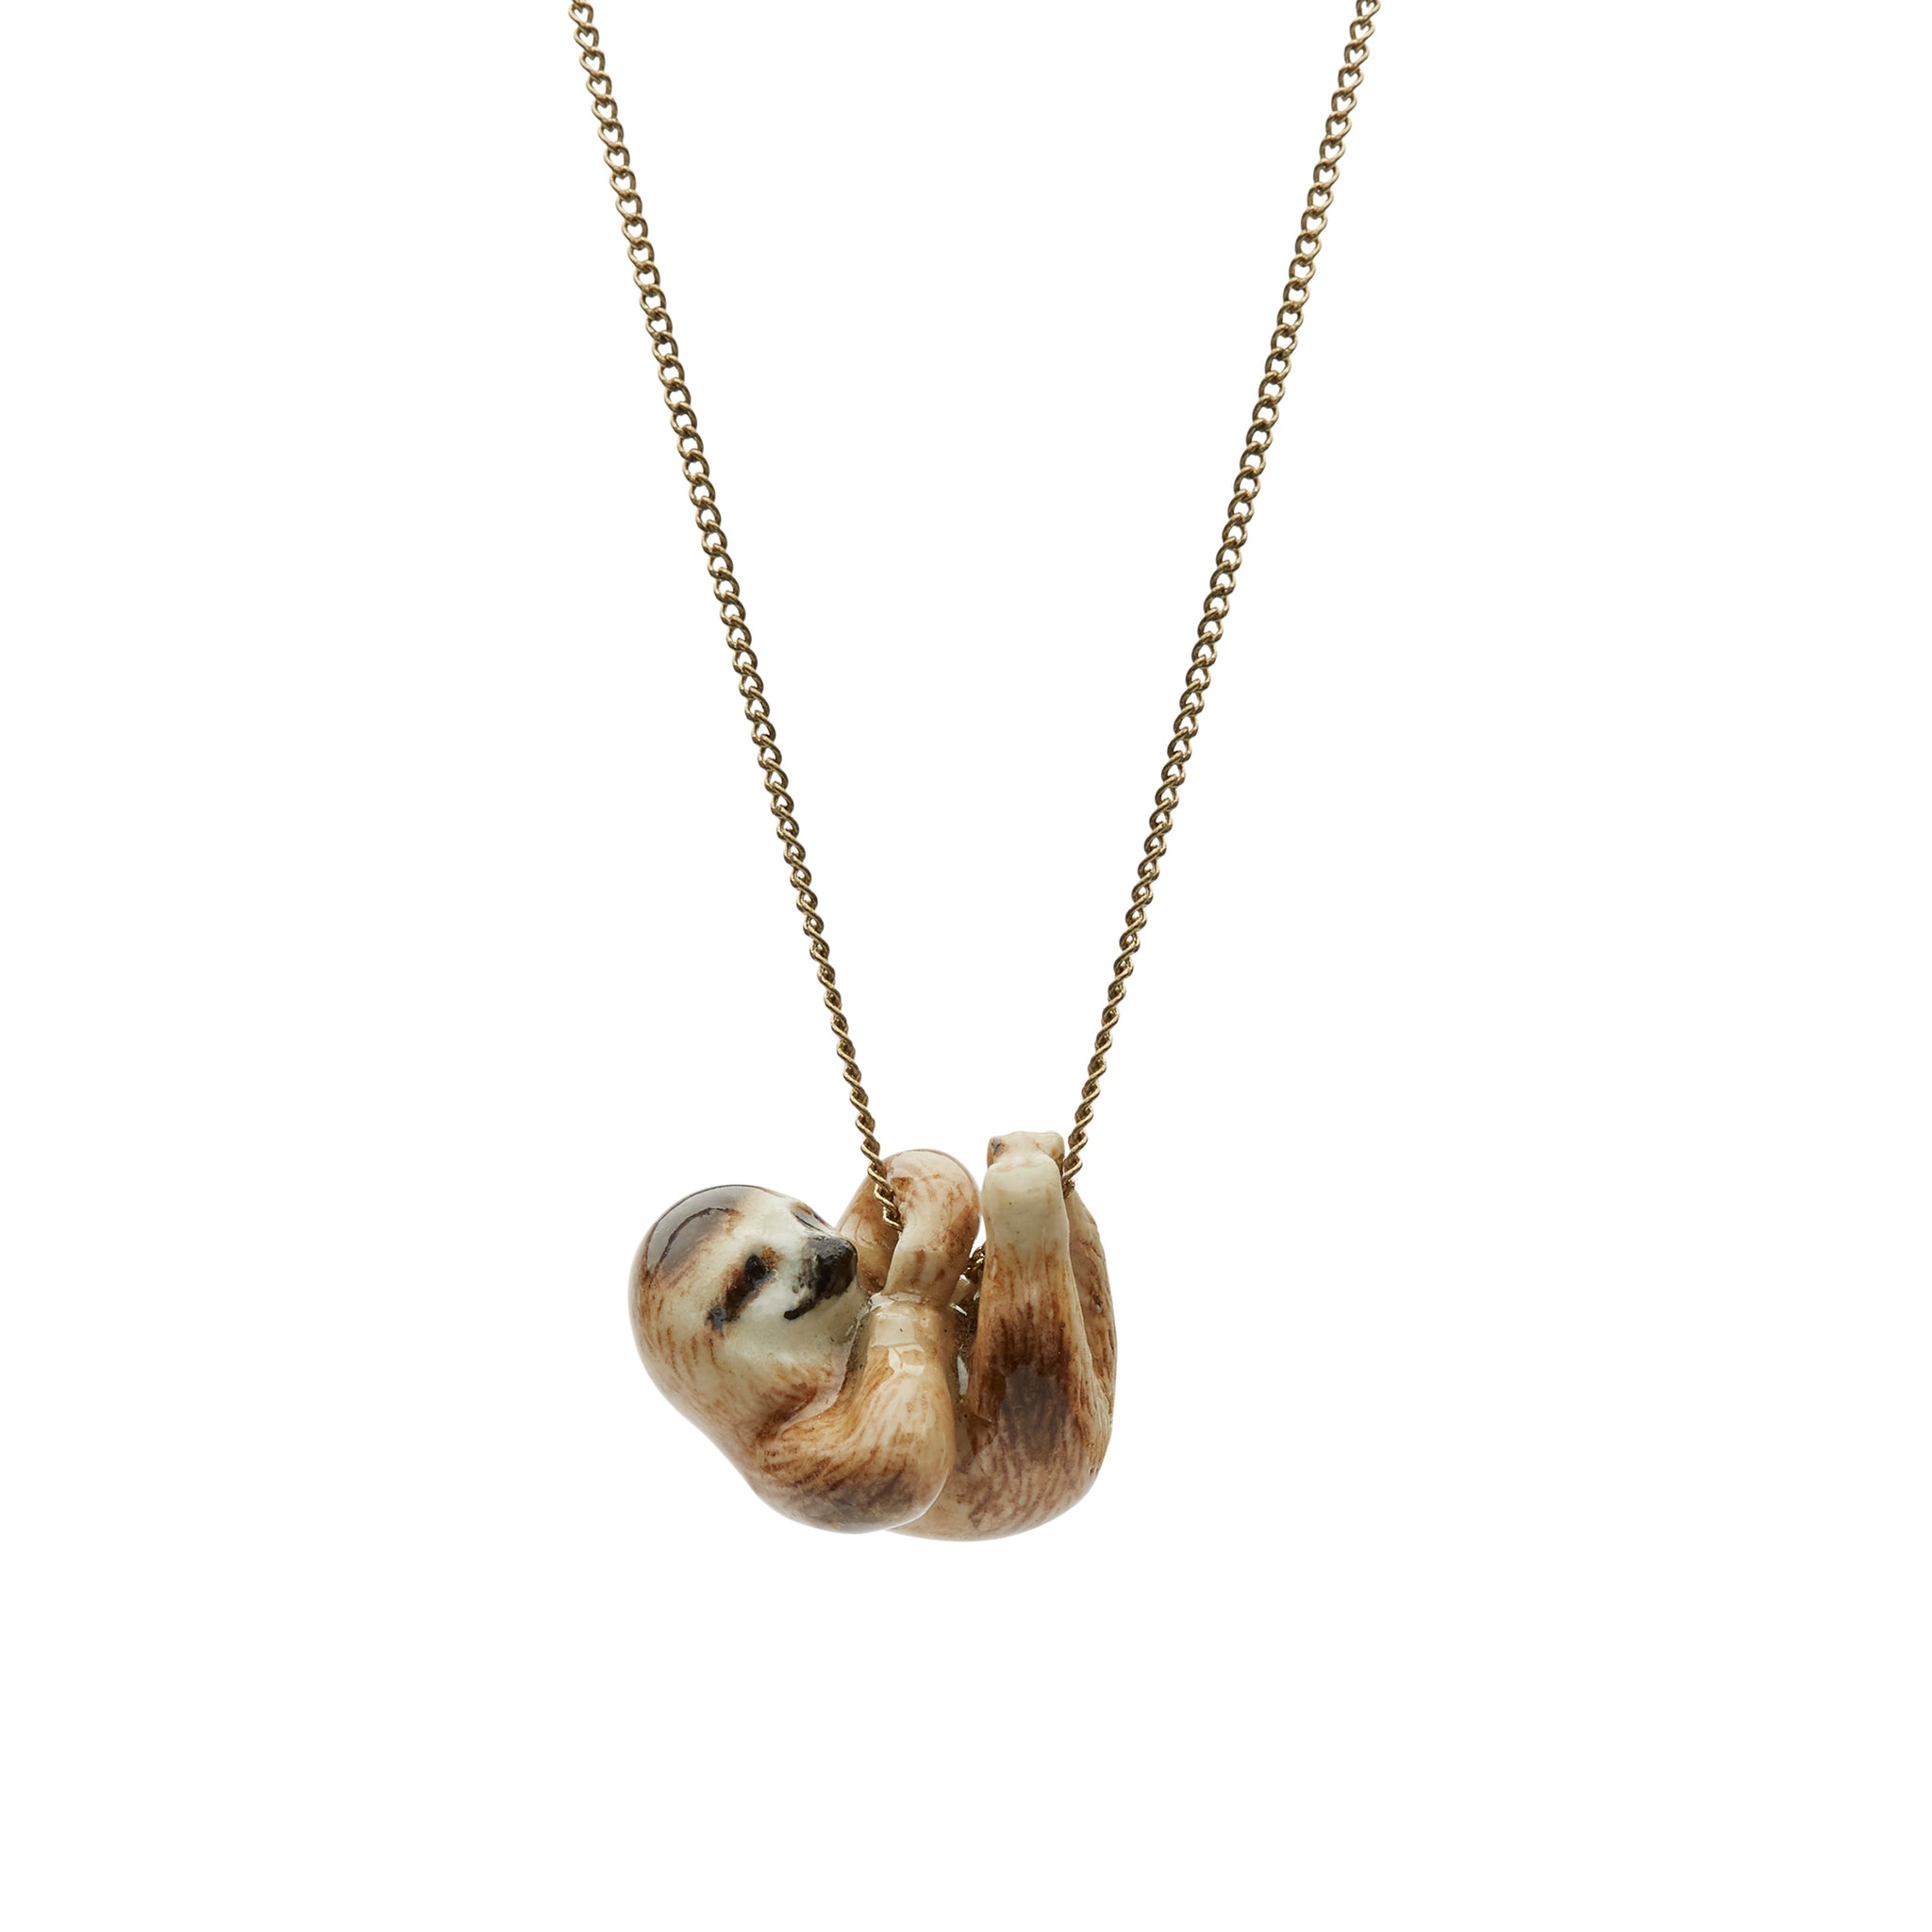 Tiny Hanging Sloth Necklace